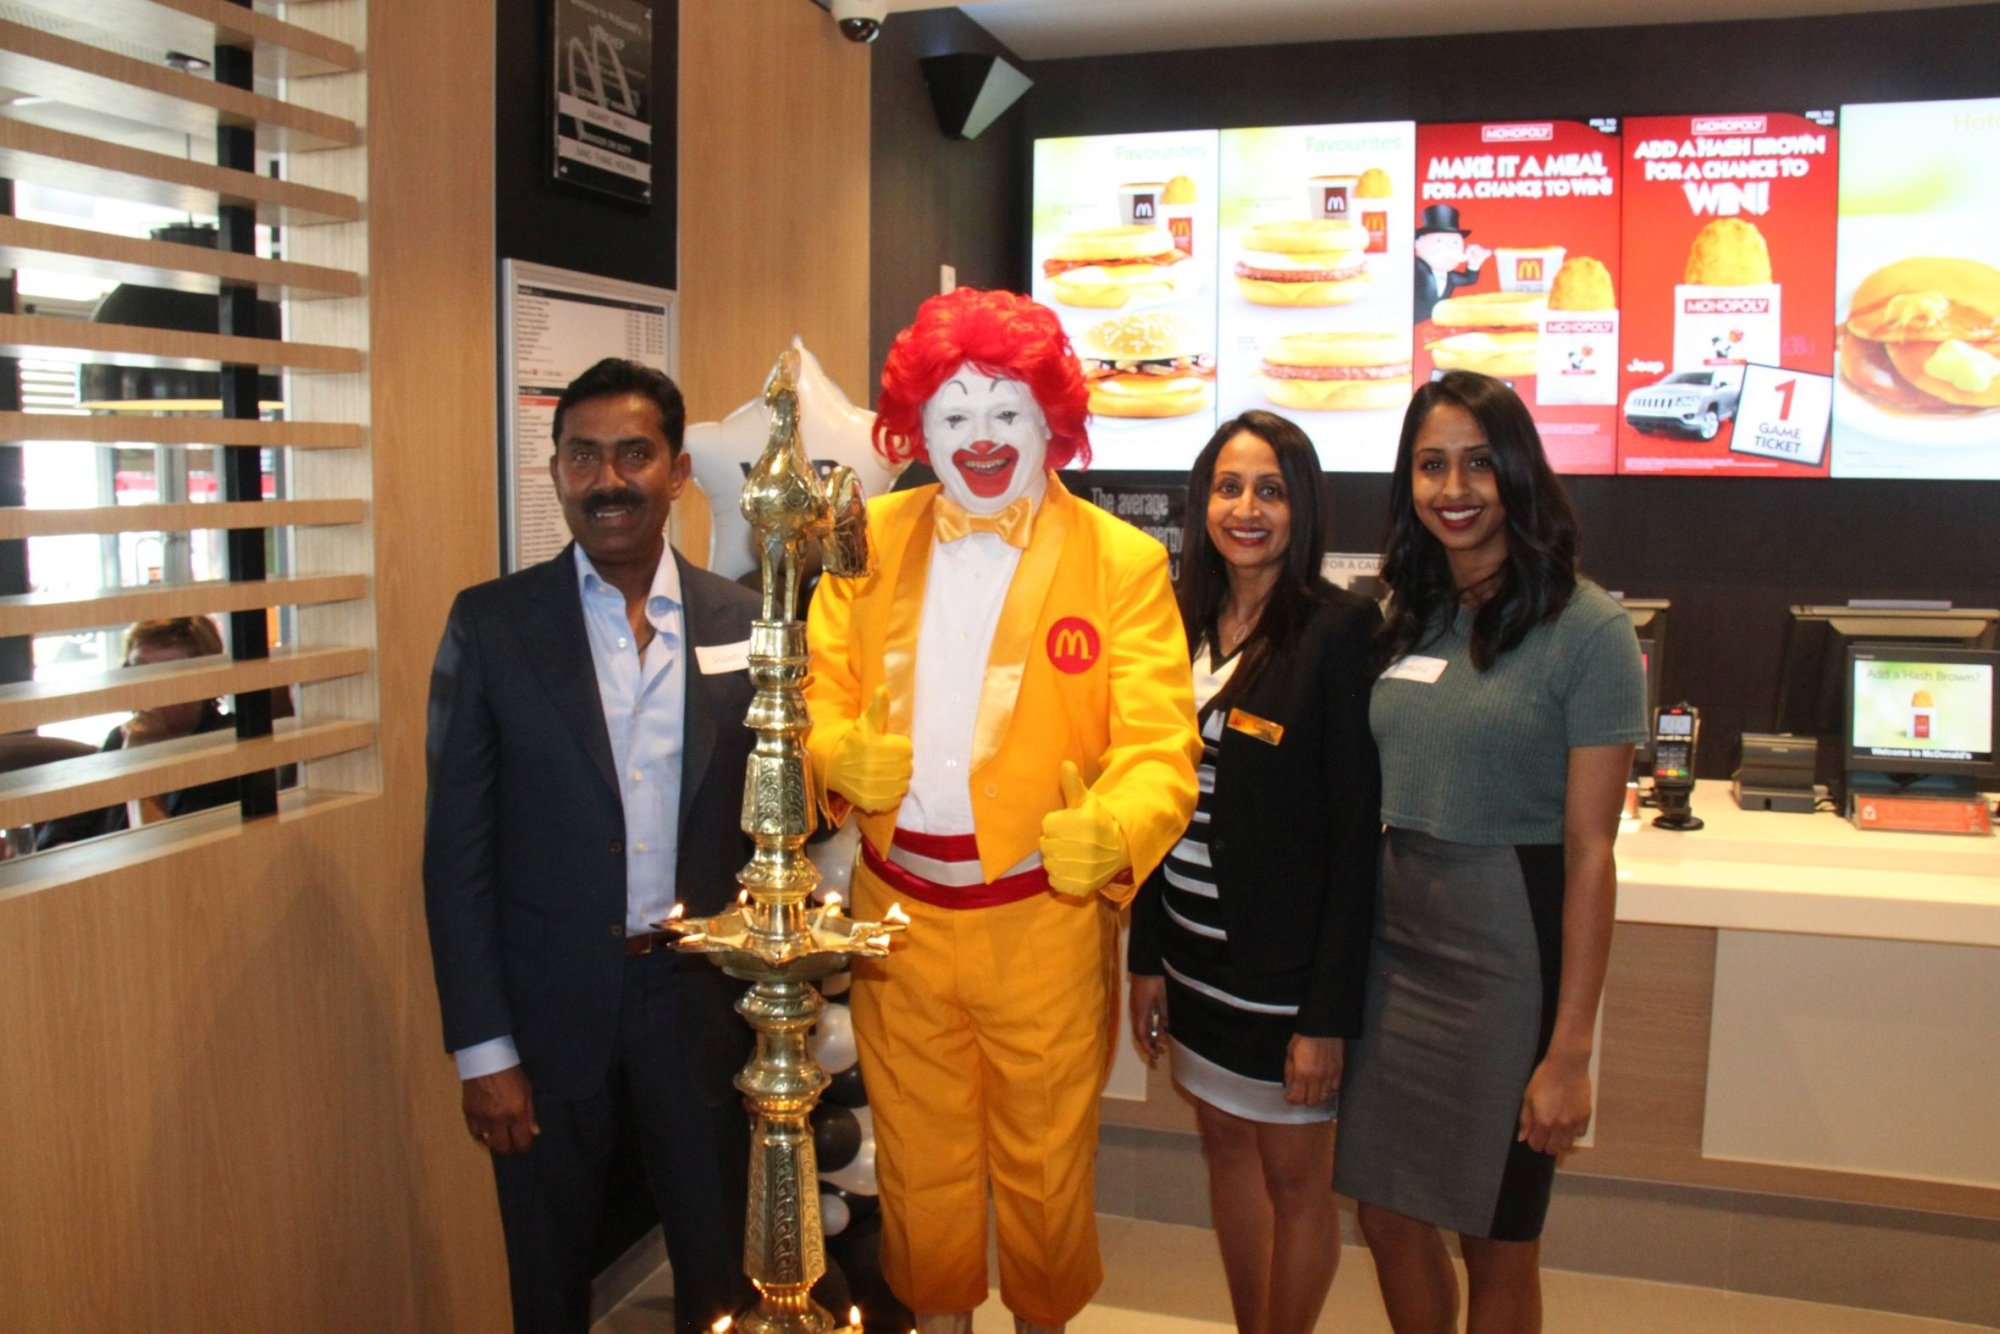 Giving back: Shanti, Arosha and Tamara Sivaraj with Ronald McDonald at the Yanchep restaurant.